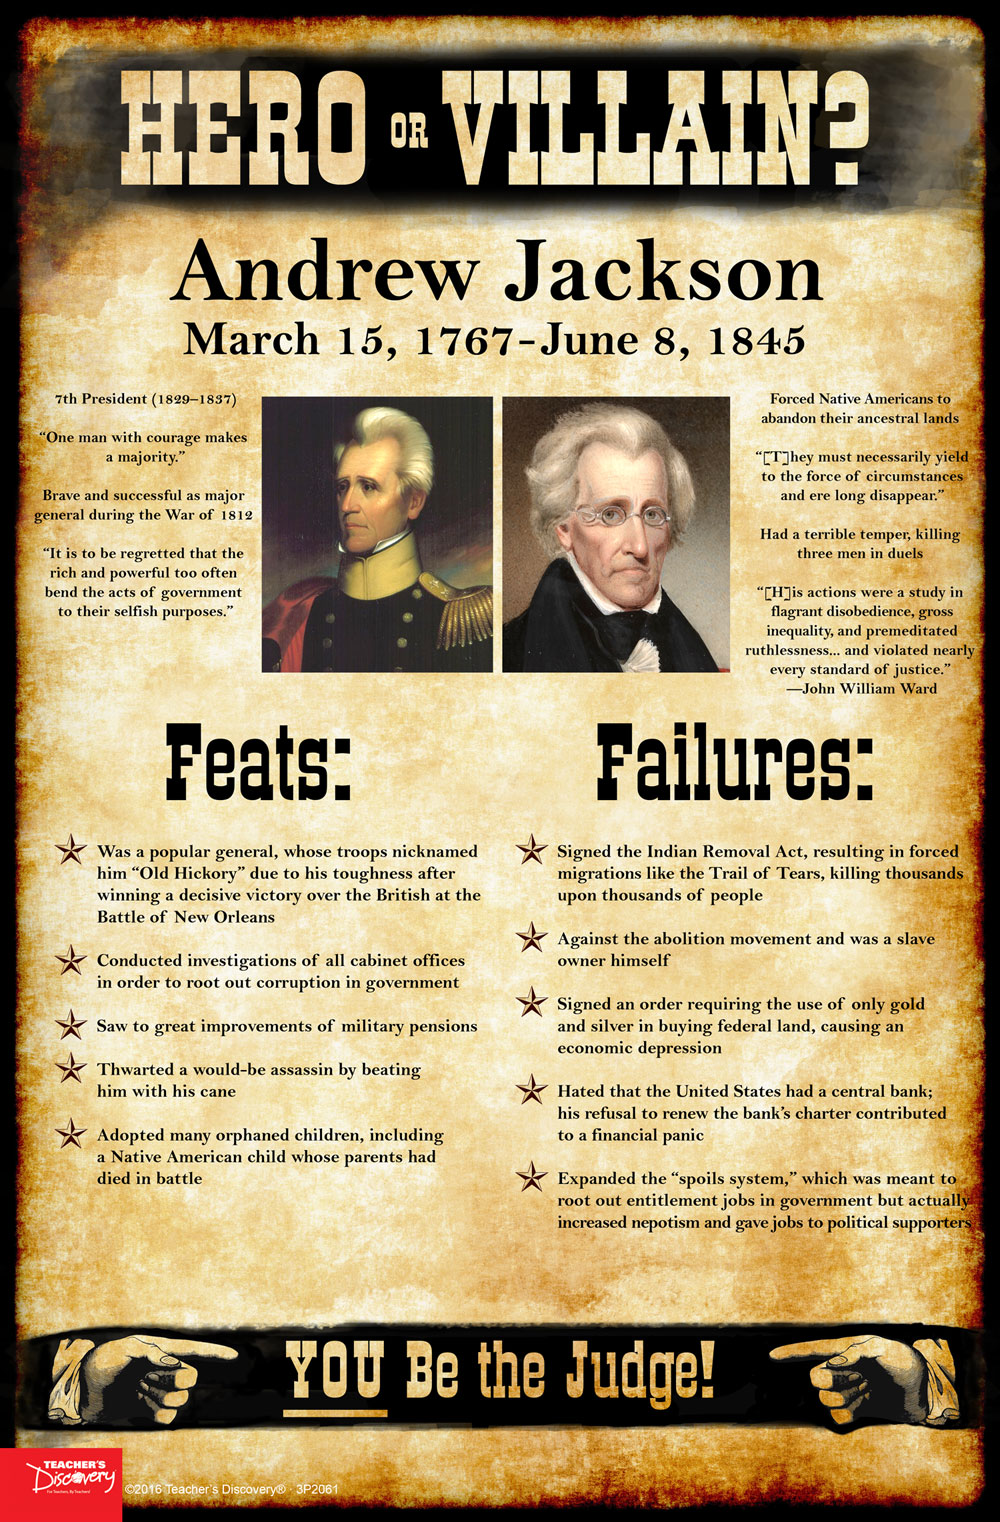 andrew jackson undemocratic essay Essays & papers andrew jackson was democratic andrew jackson was democratic jackson had used undemocratic actions in order to further his democratic goals.